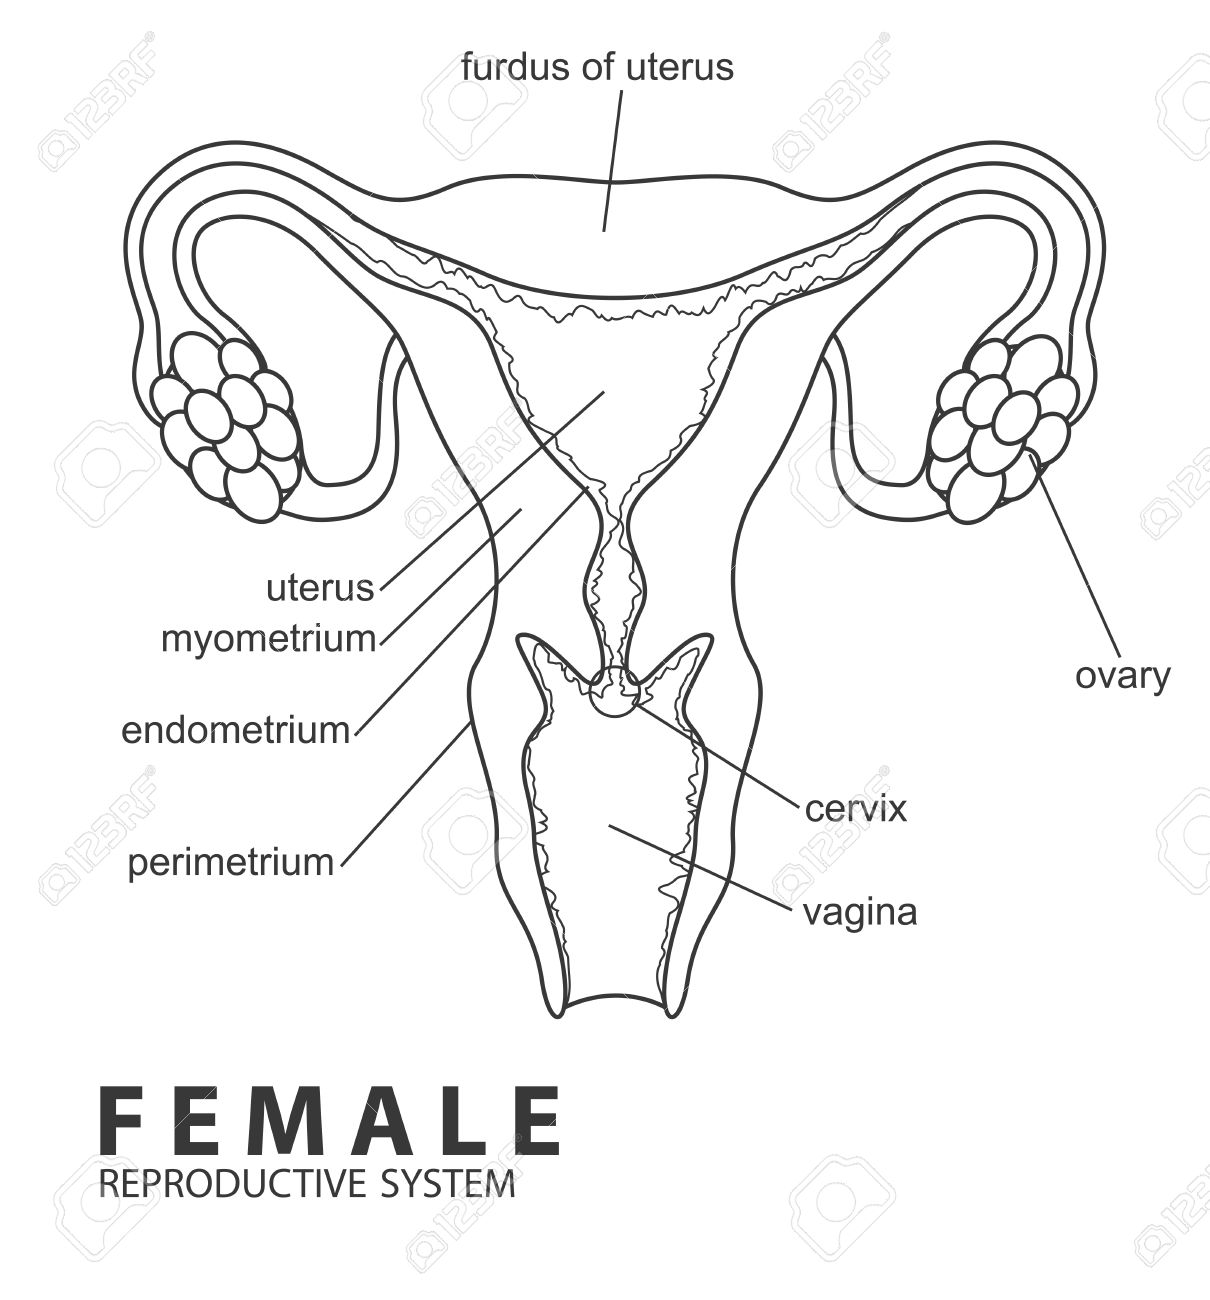 2604 Female Reproductive System Cliparts Stock Vector And Royalty